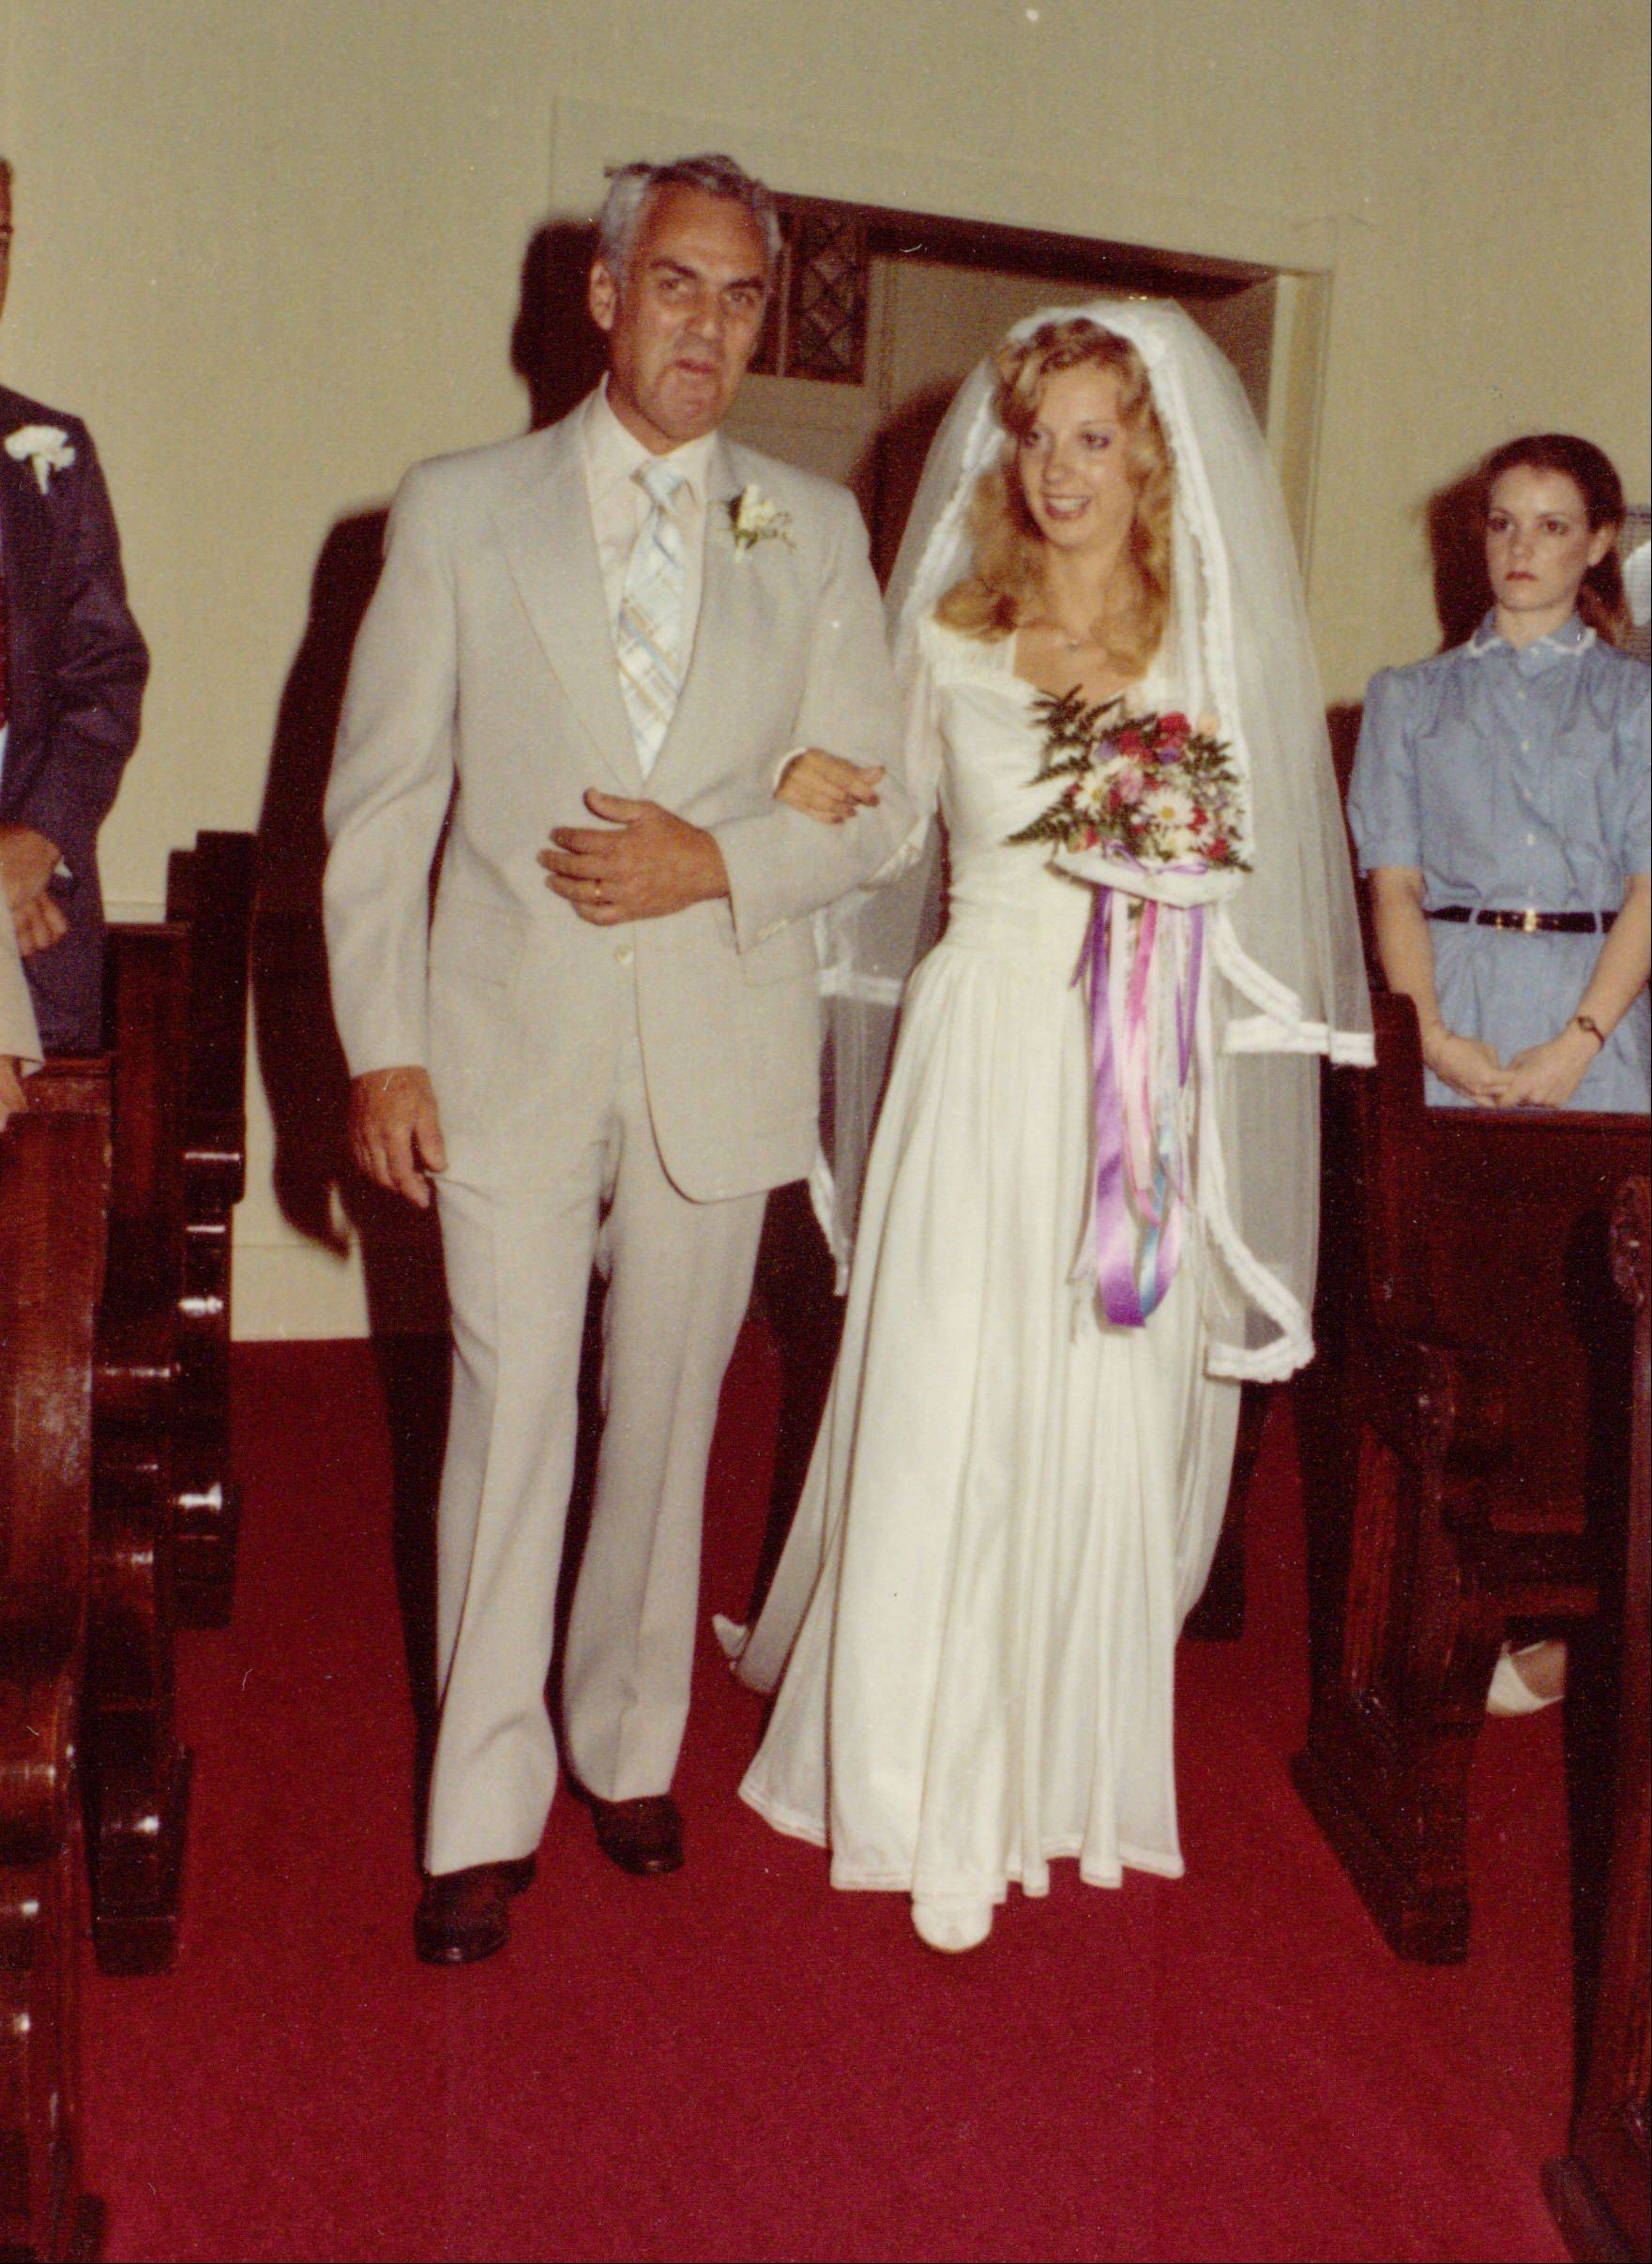 Gene Voiland walks his daughter Ann down the aisle in 1981. Ann wore her mother Cay's dress.